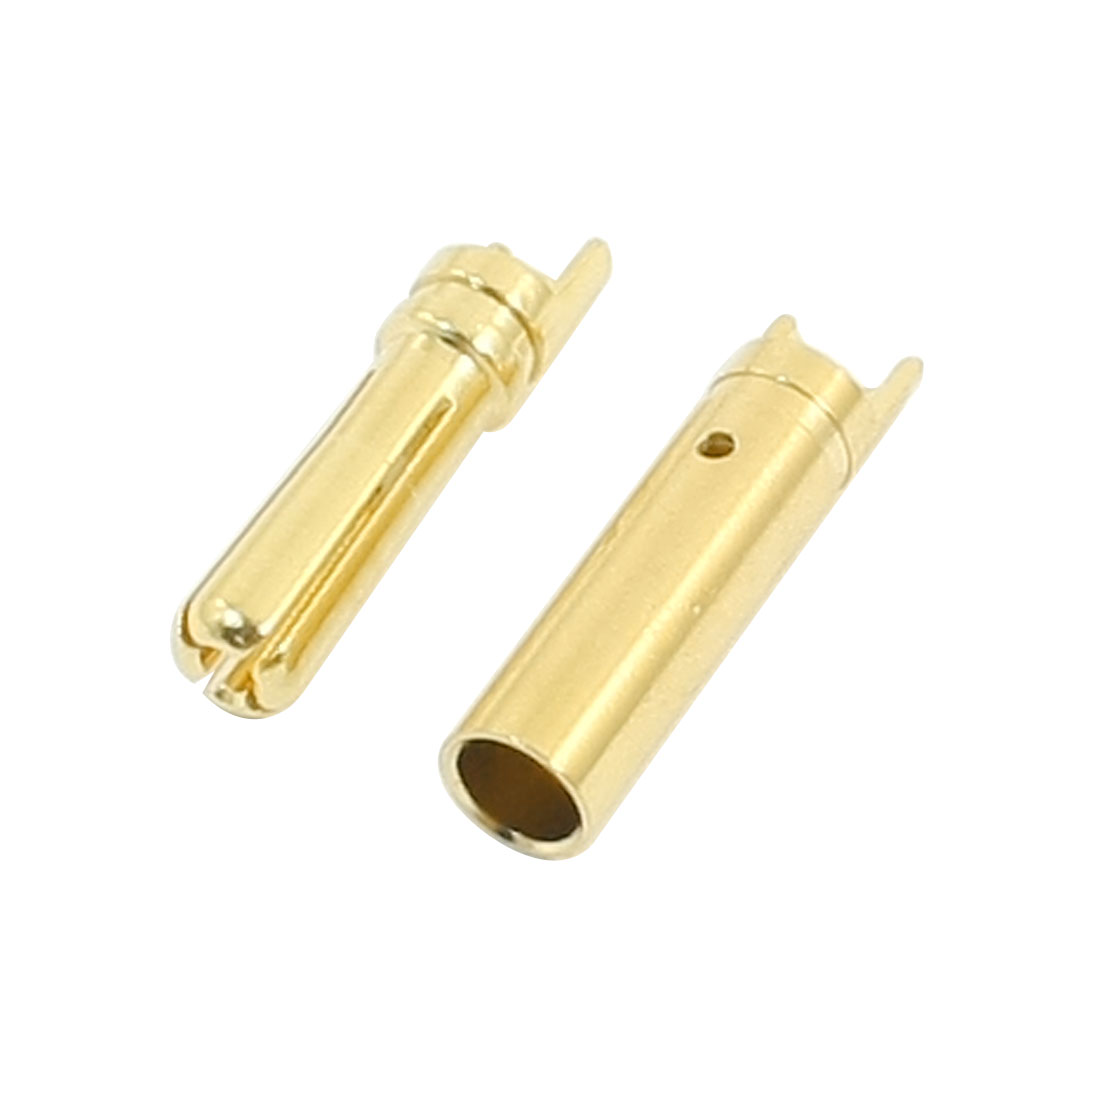 RC Model Brushless Motor Li-Po Battery Part Gold Tone Metal Male Female Banana Plug Connector Adapter 4mm Dia Pair